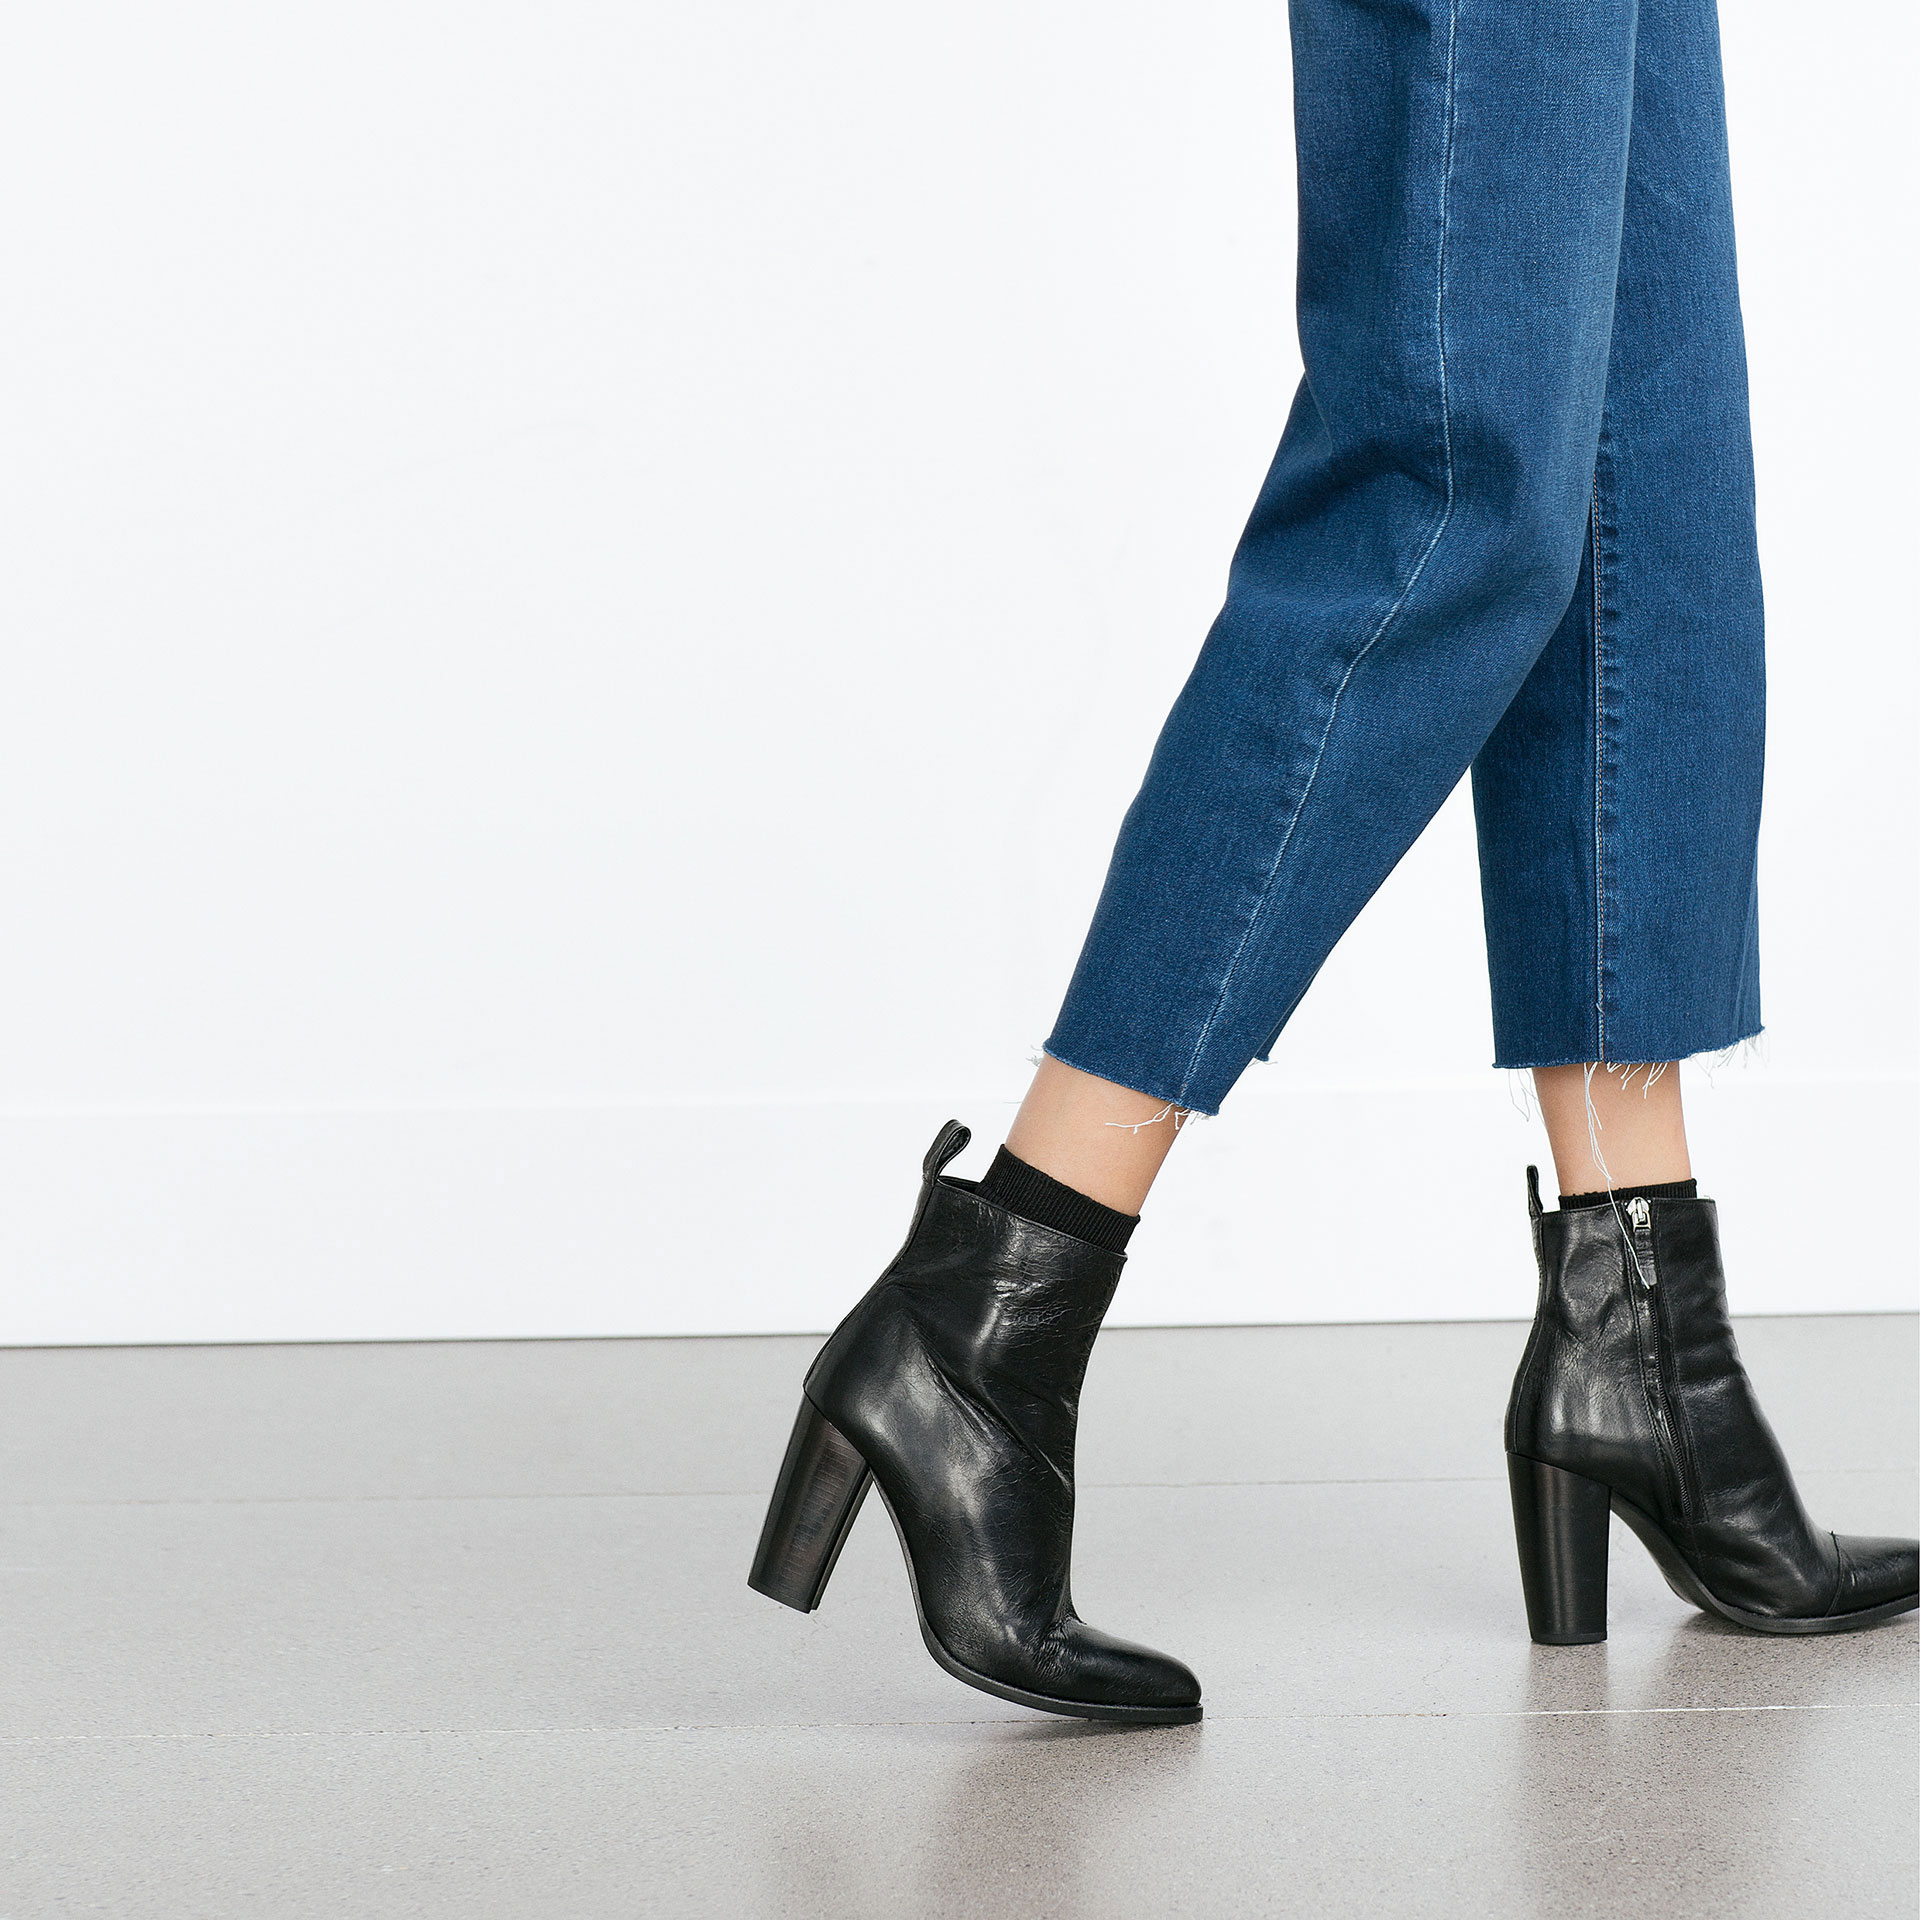 Zara High Heel Leather Ankle Boots With Pull Tab in Black | Lyst